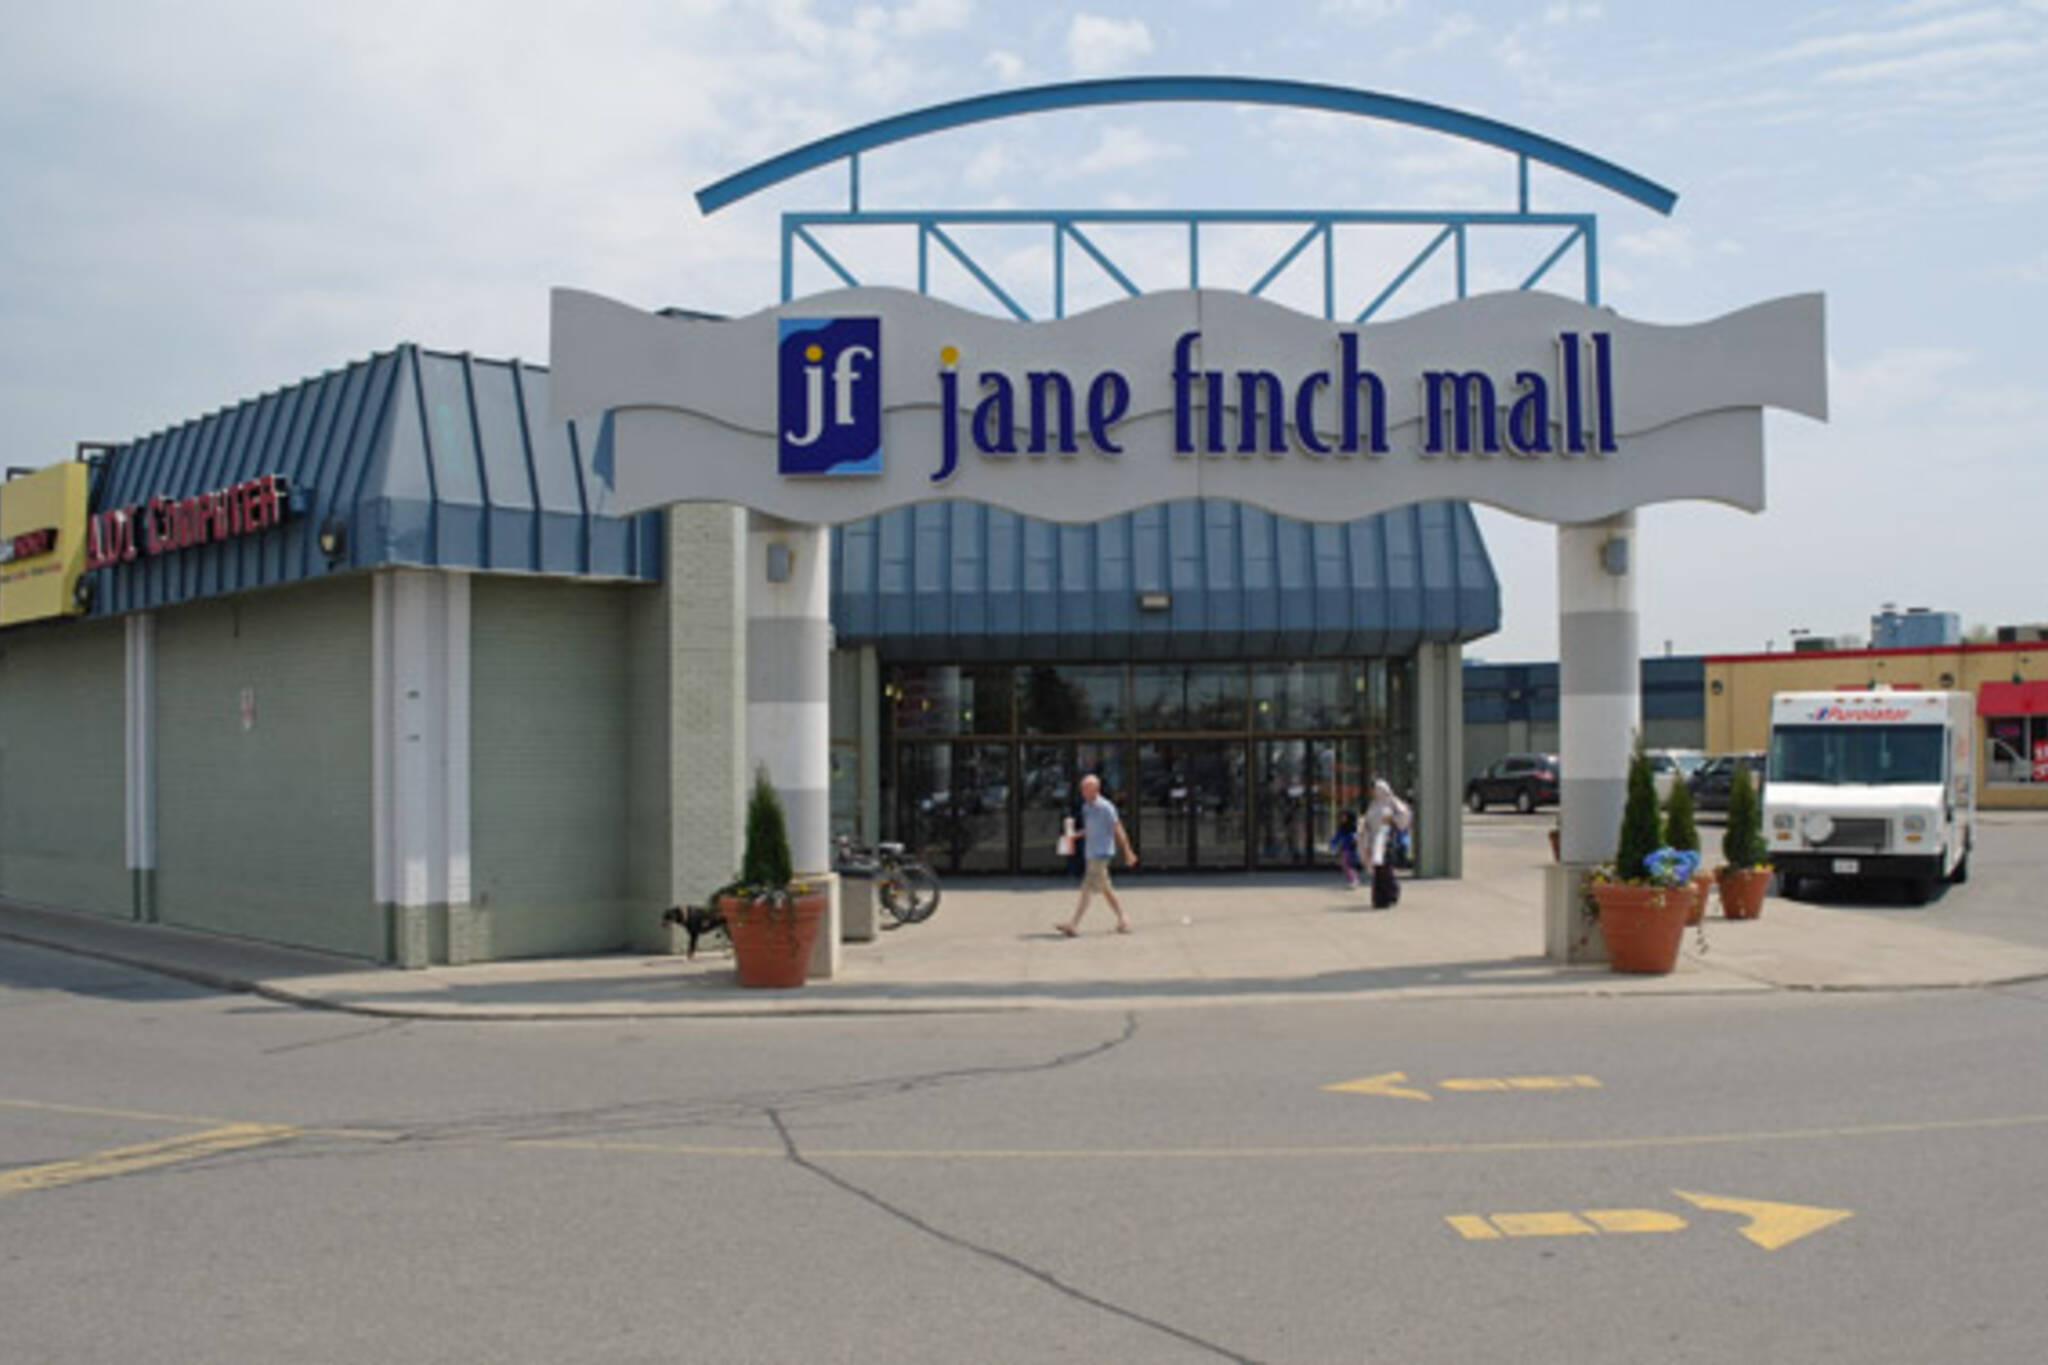 Jane Finch Mall